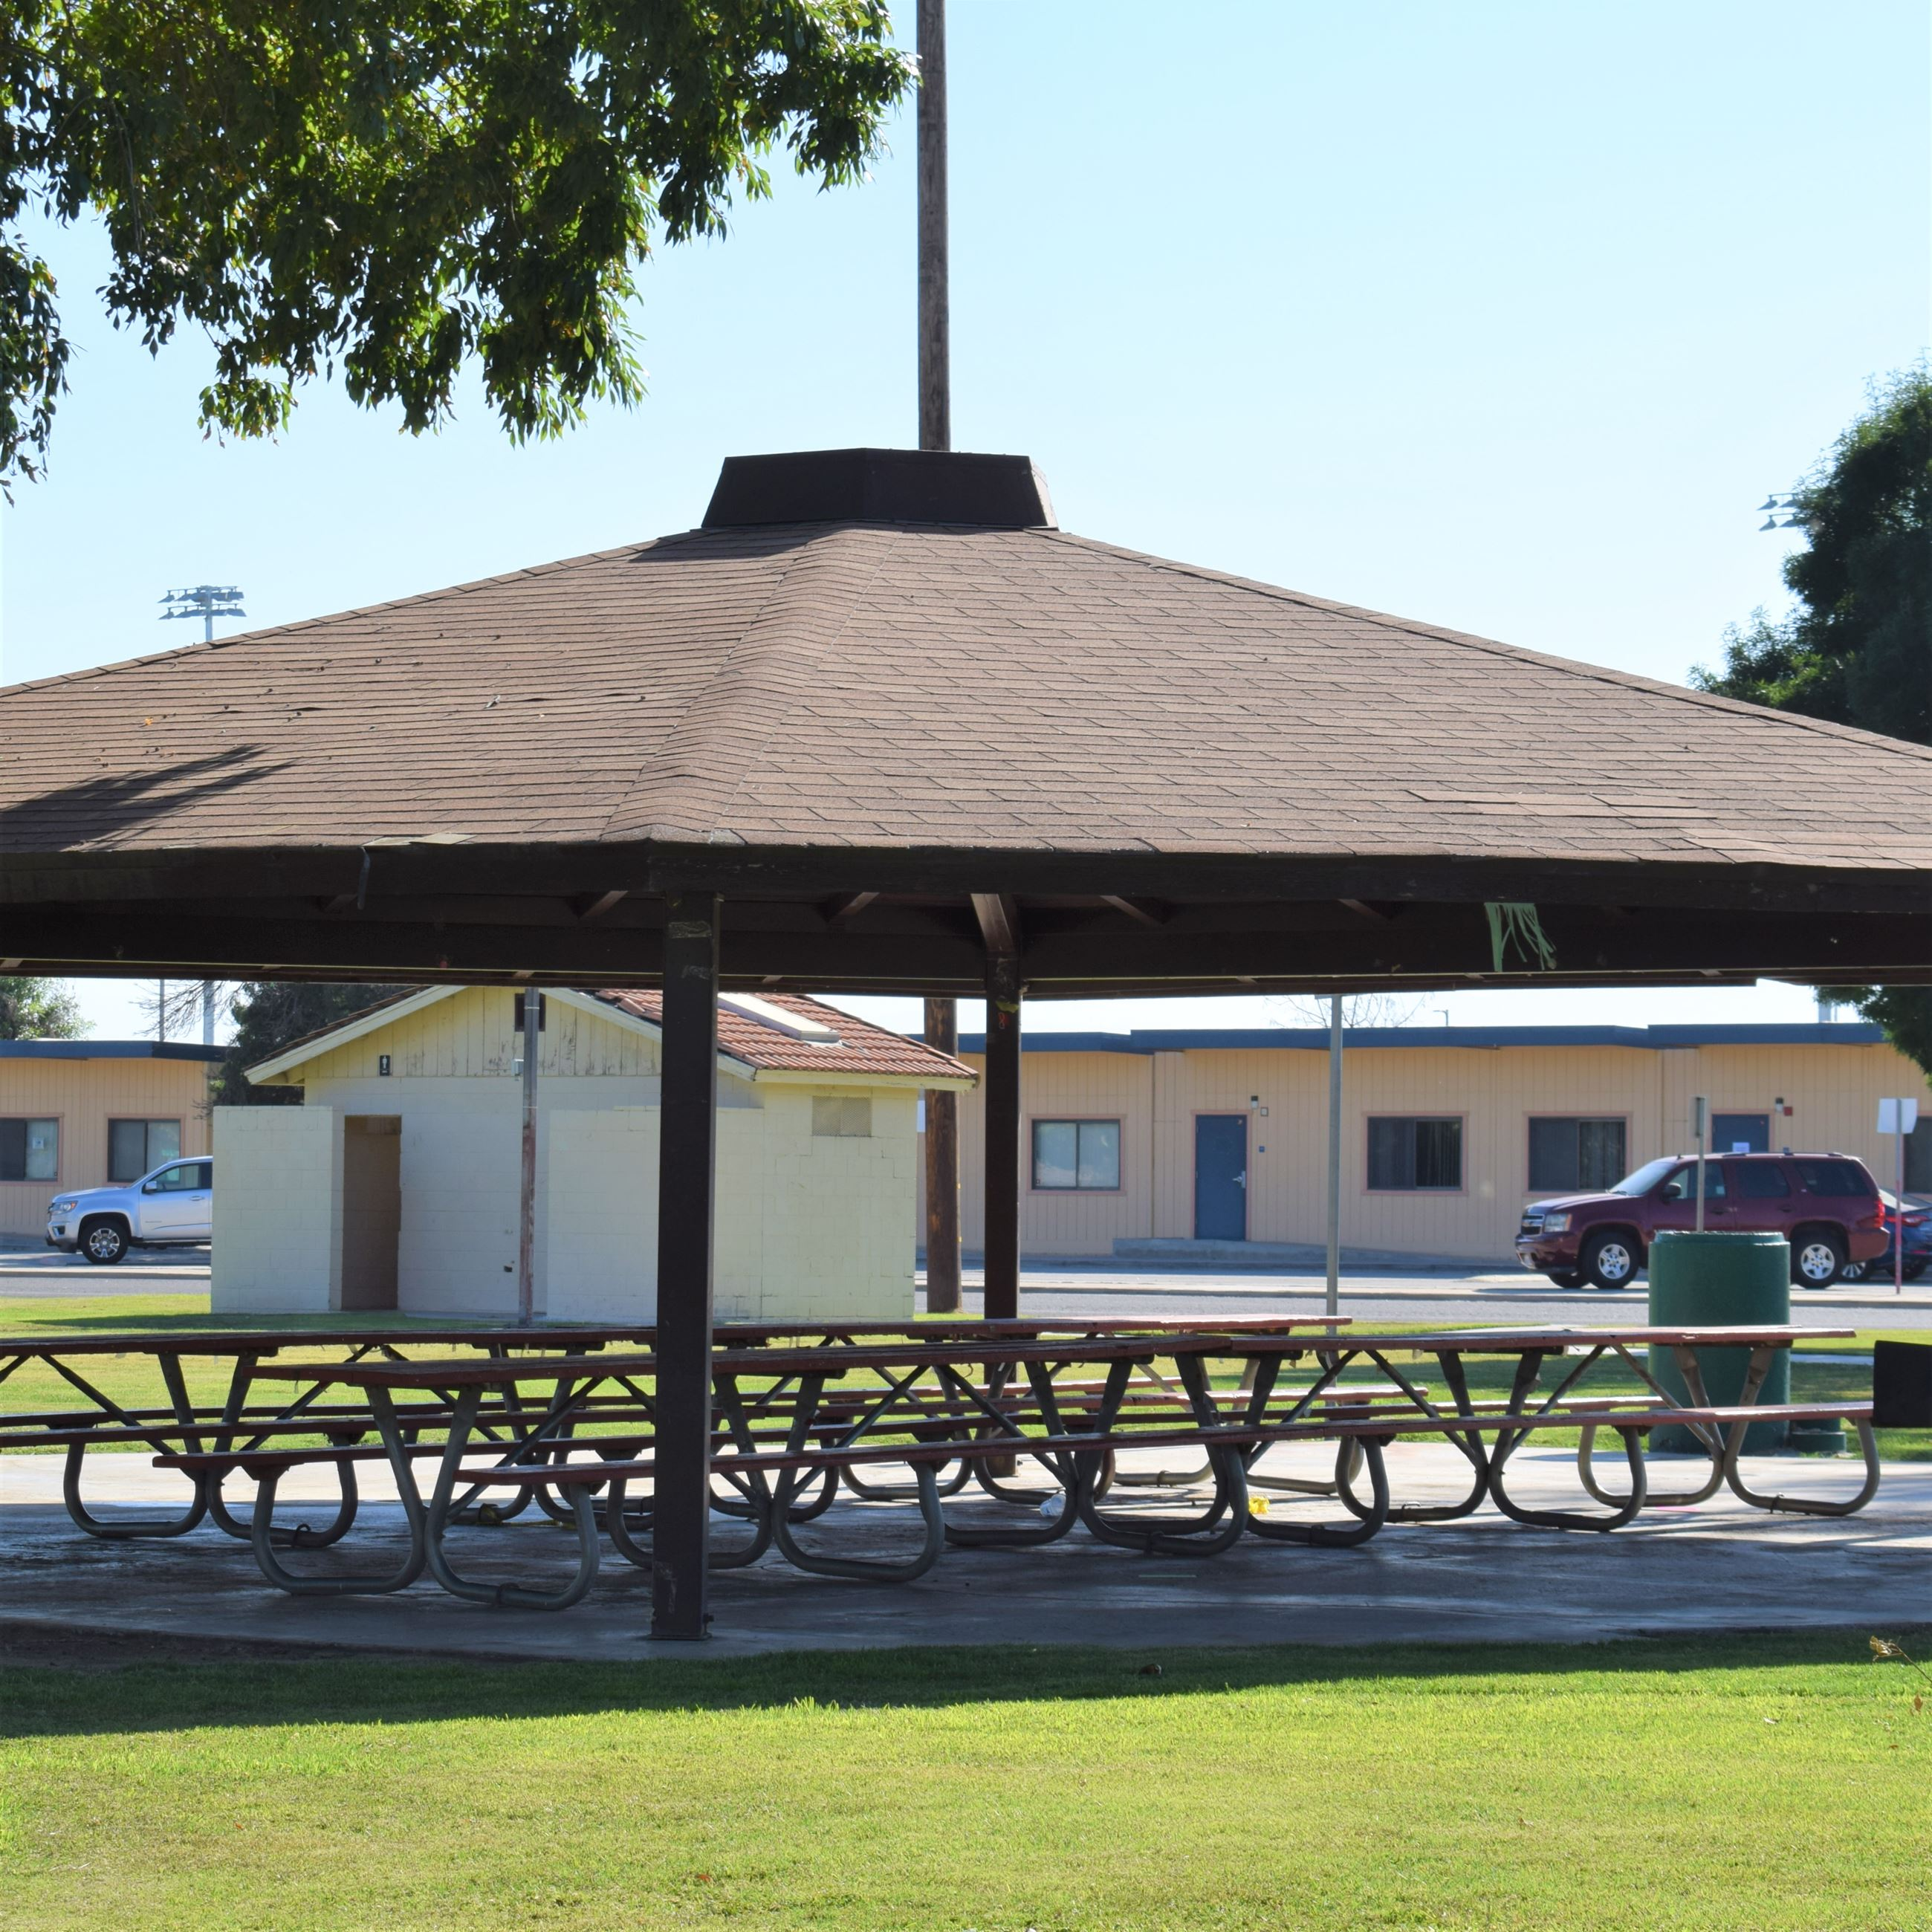 Cecil Park North Gazebo